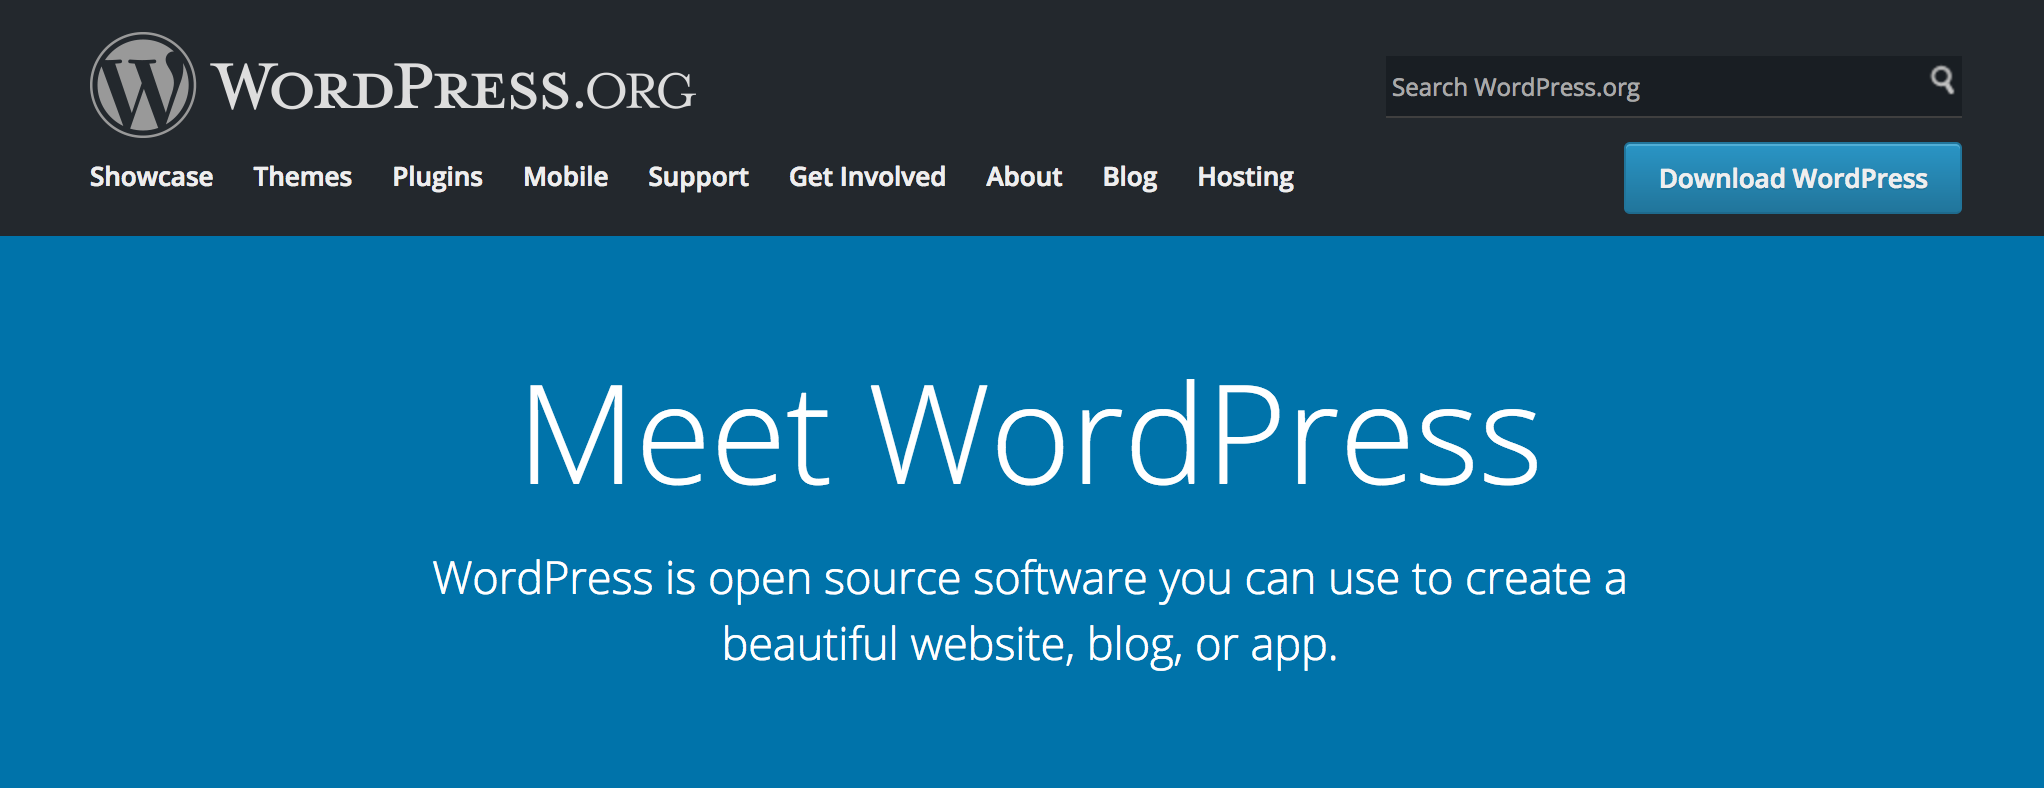 Starting a Blog on WordPress.org - Blogging Platform